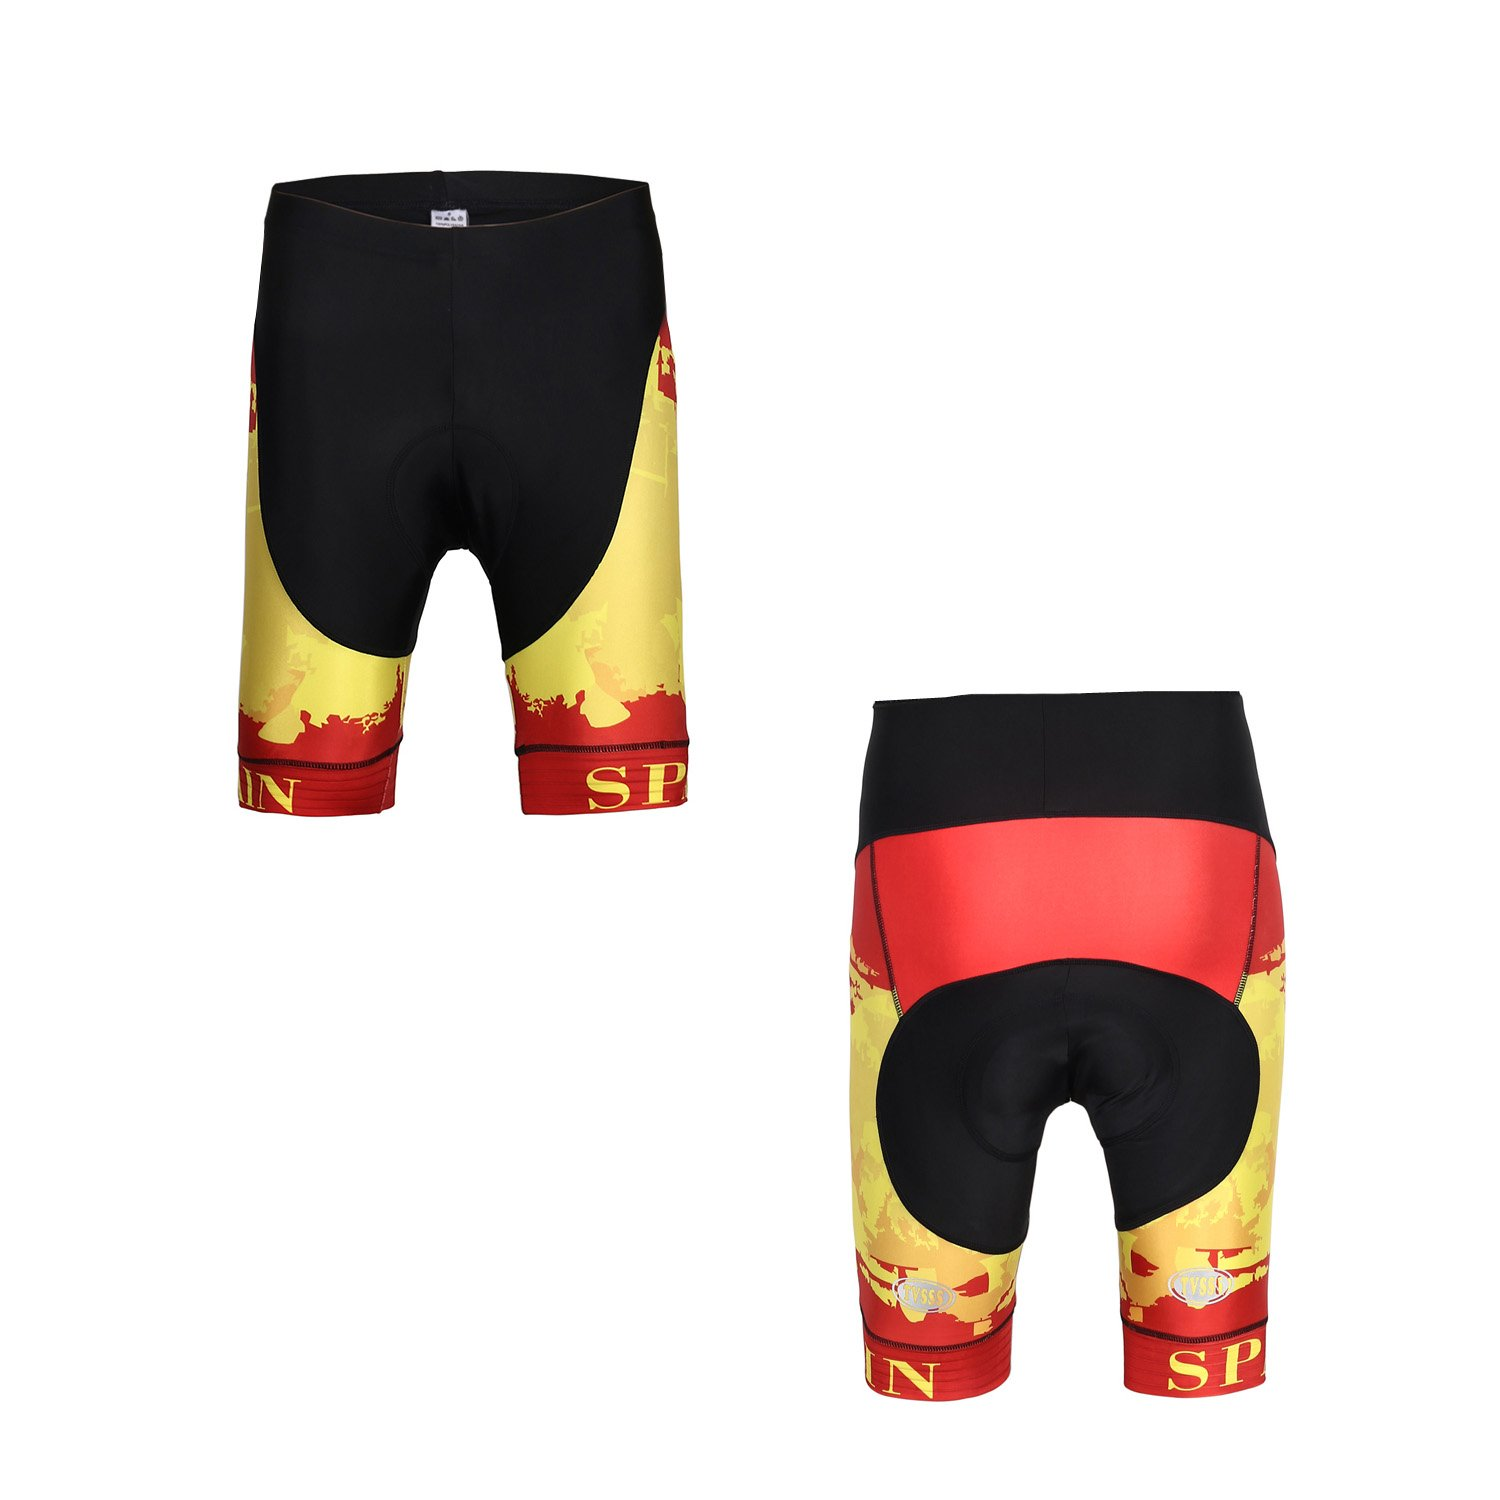 Cycling Jersey Sets Men's Bib Shorts Short-Sleeved Summer Cycling Clothing Team Suits B07427DD47 XXXXXX-Large|Spain & No Bib pants Spain & No Bib pants XXXXXX-Large